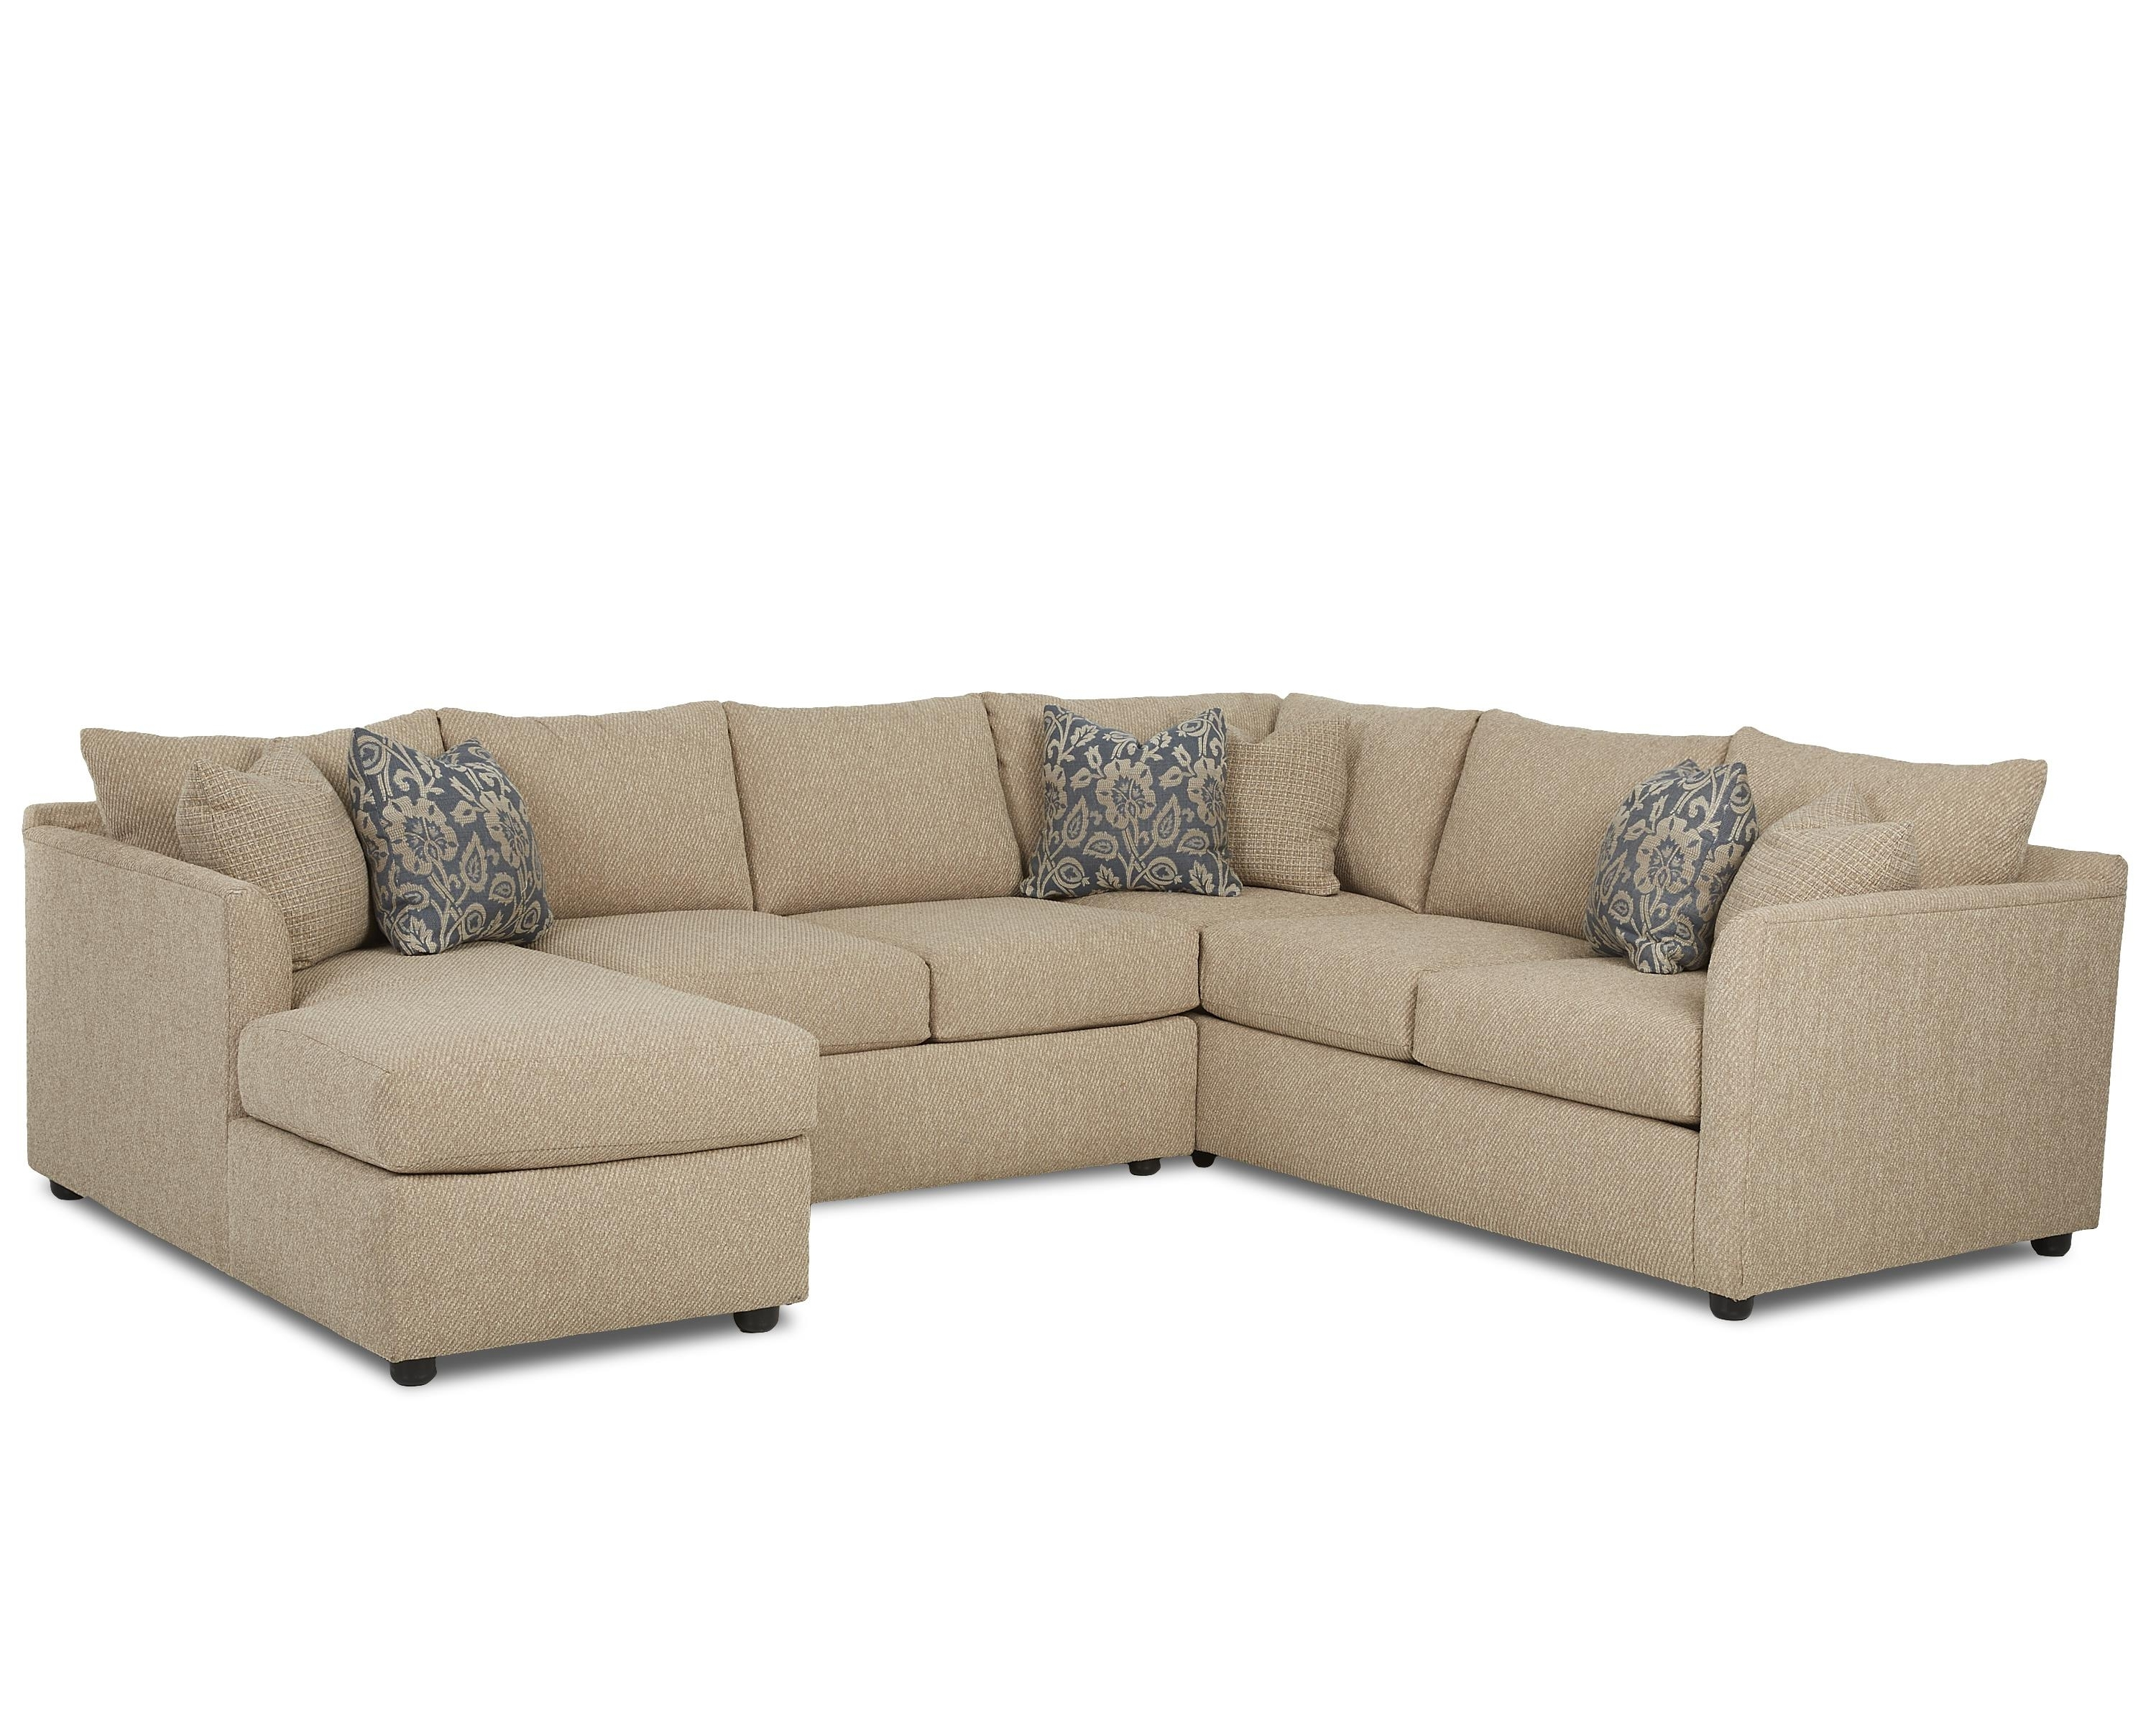 Preferred Furniture: Gorgeous King Hickory Sectional For Living Room Within Hickory Nc Sectional Sofas (View 16 of 20)